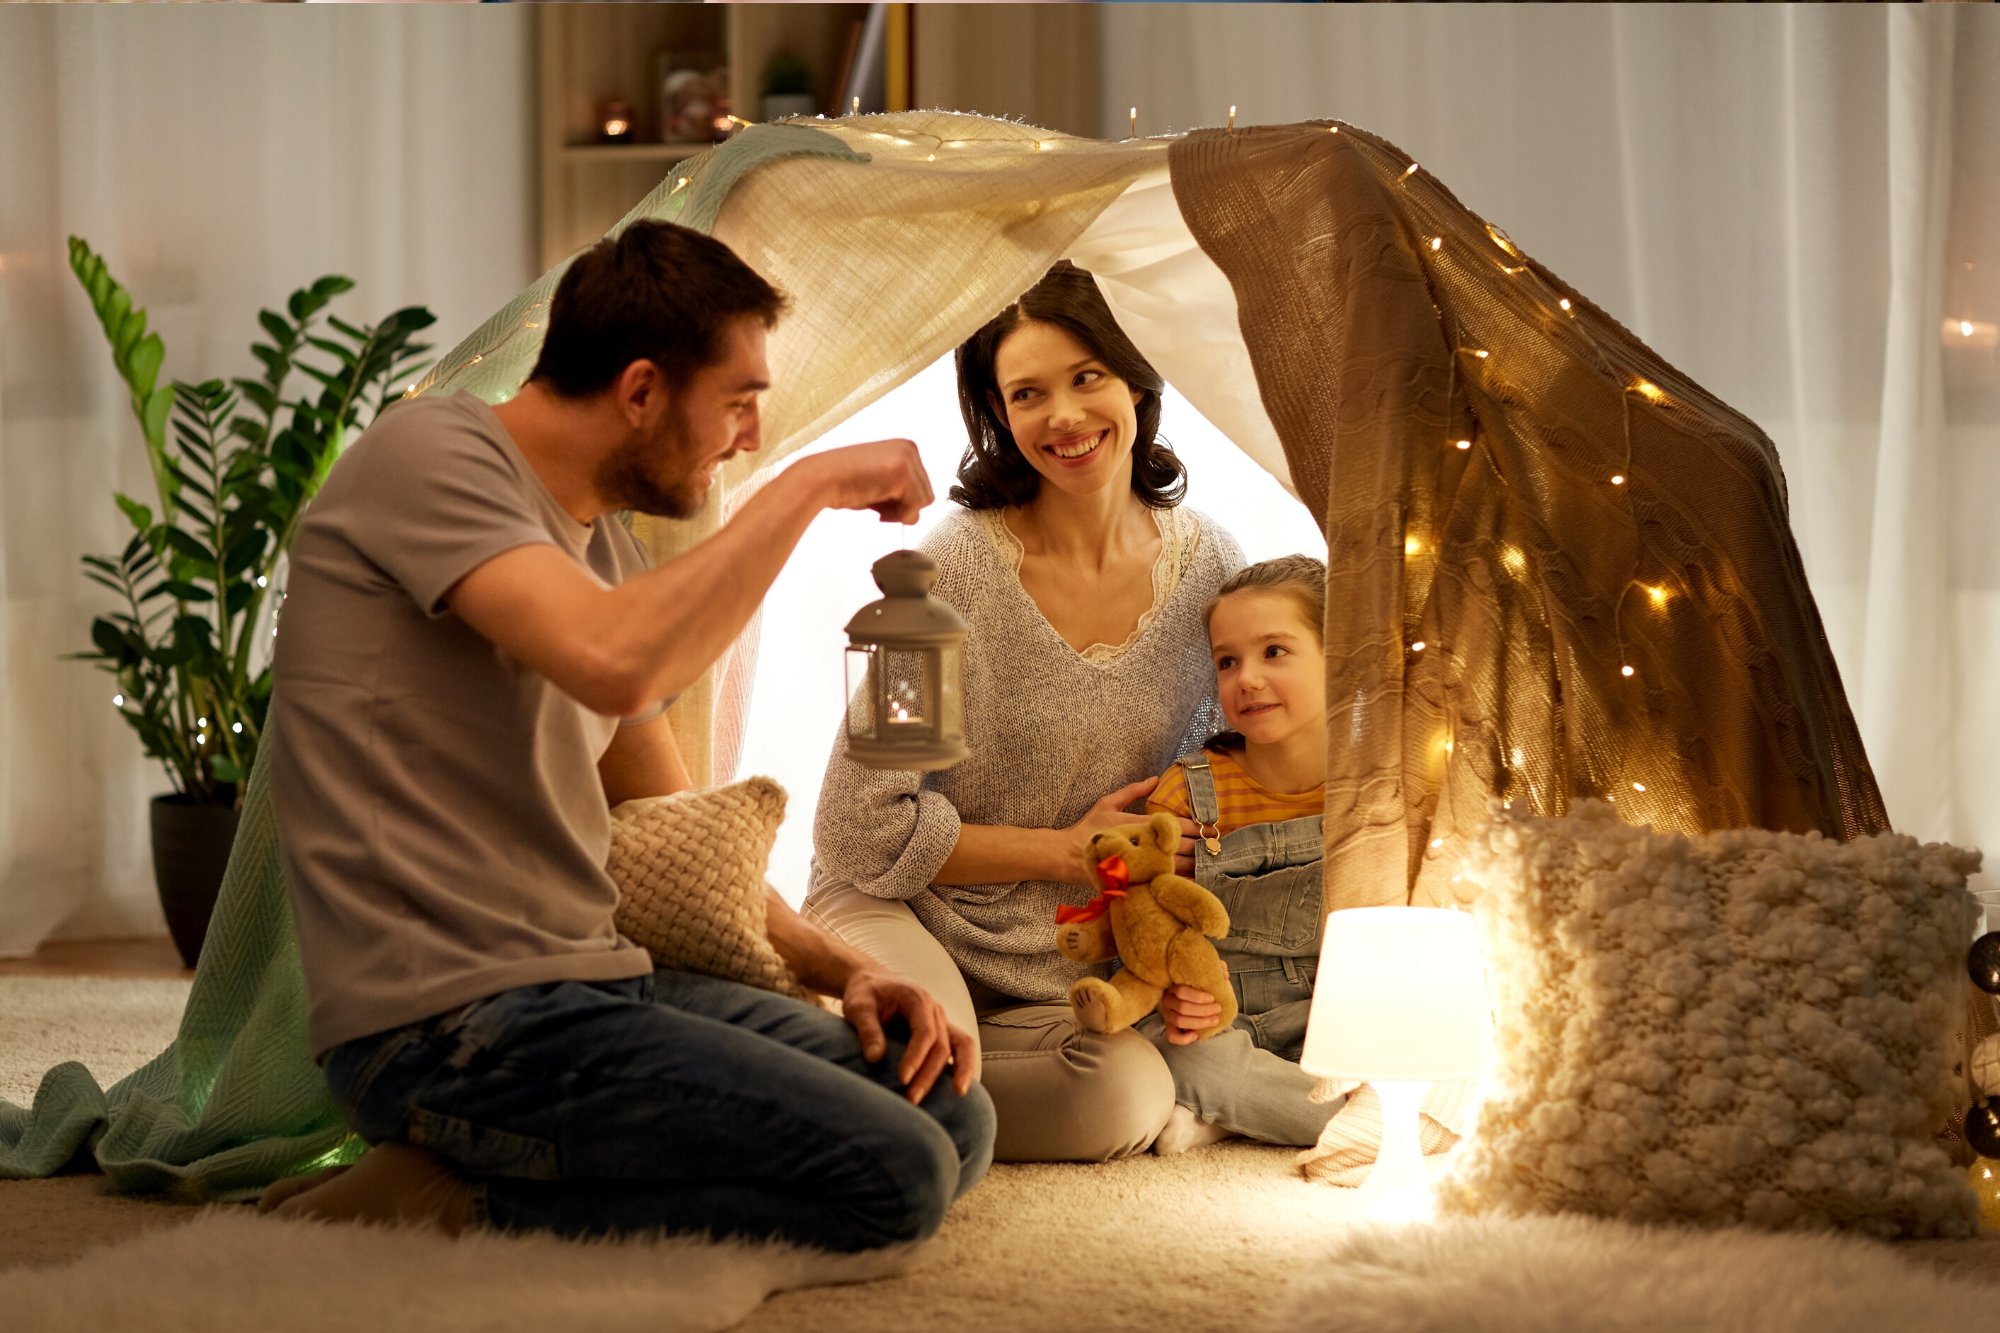 Mother and Father playing with their child in an indoor fabric lit up tent